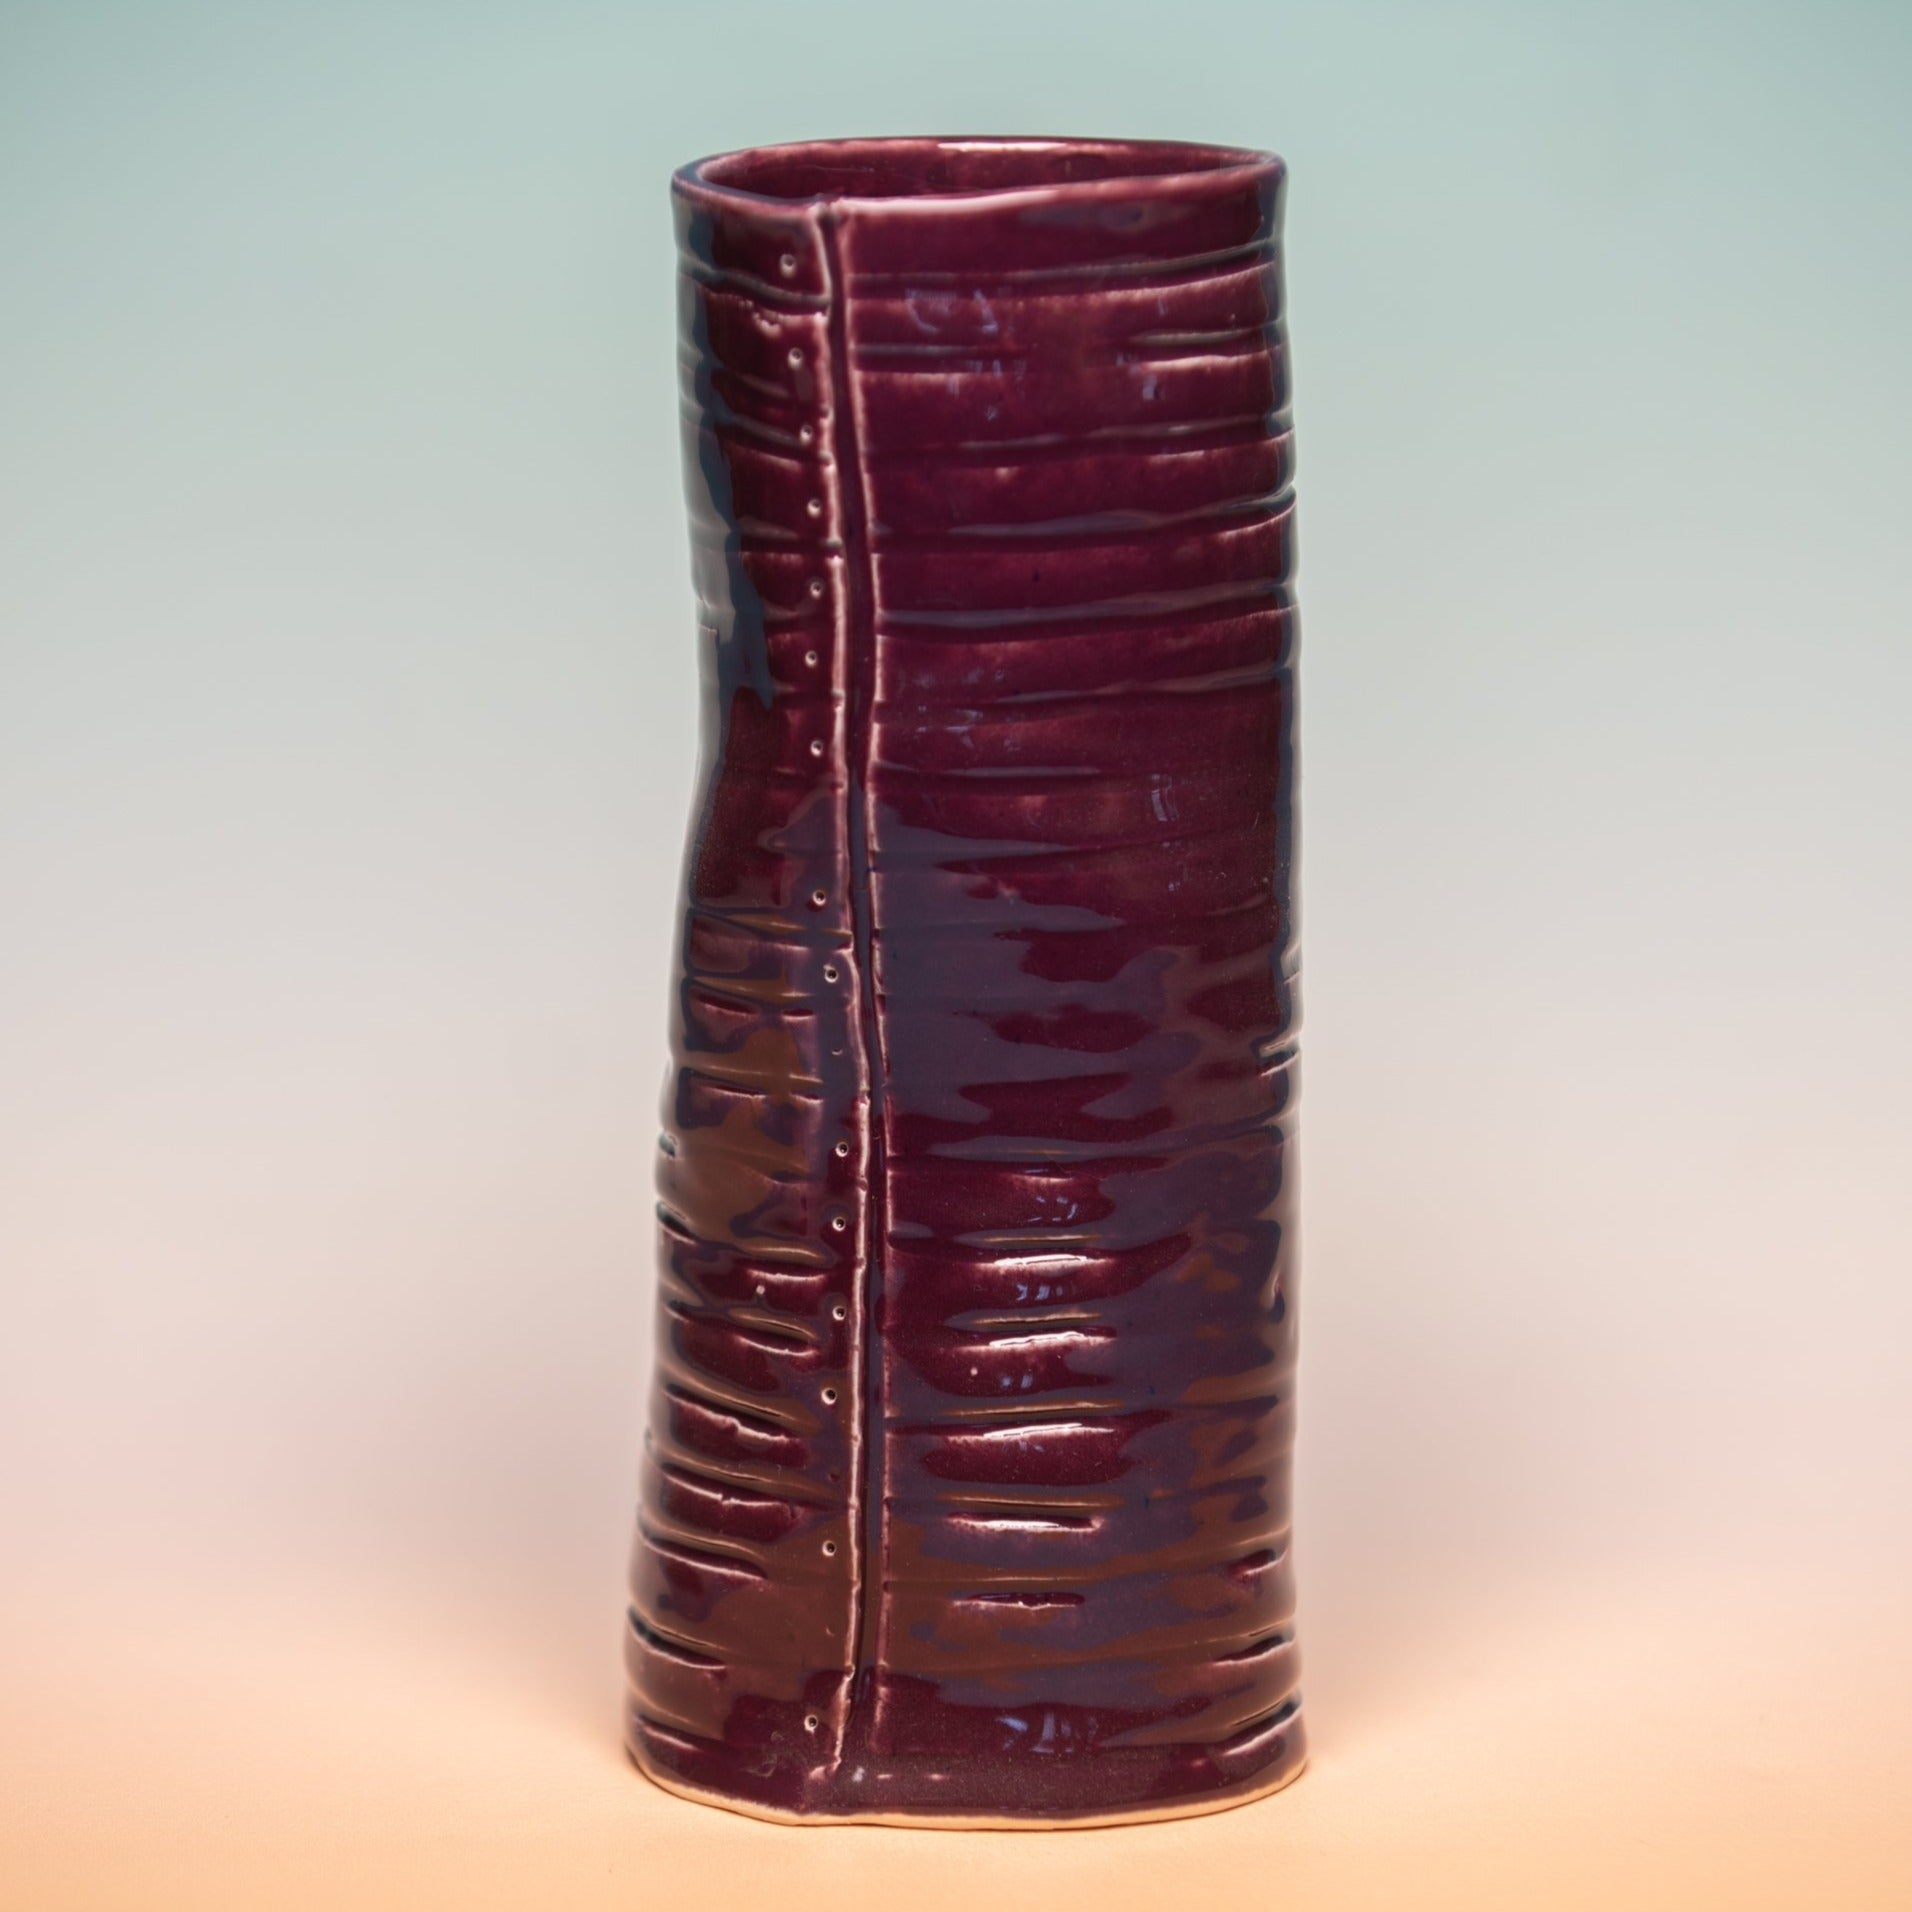 Organic Cylindrical Vase - Plum, Kelly Kaatz, Handcrafted Home Goods and Gifts